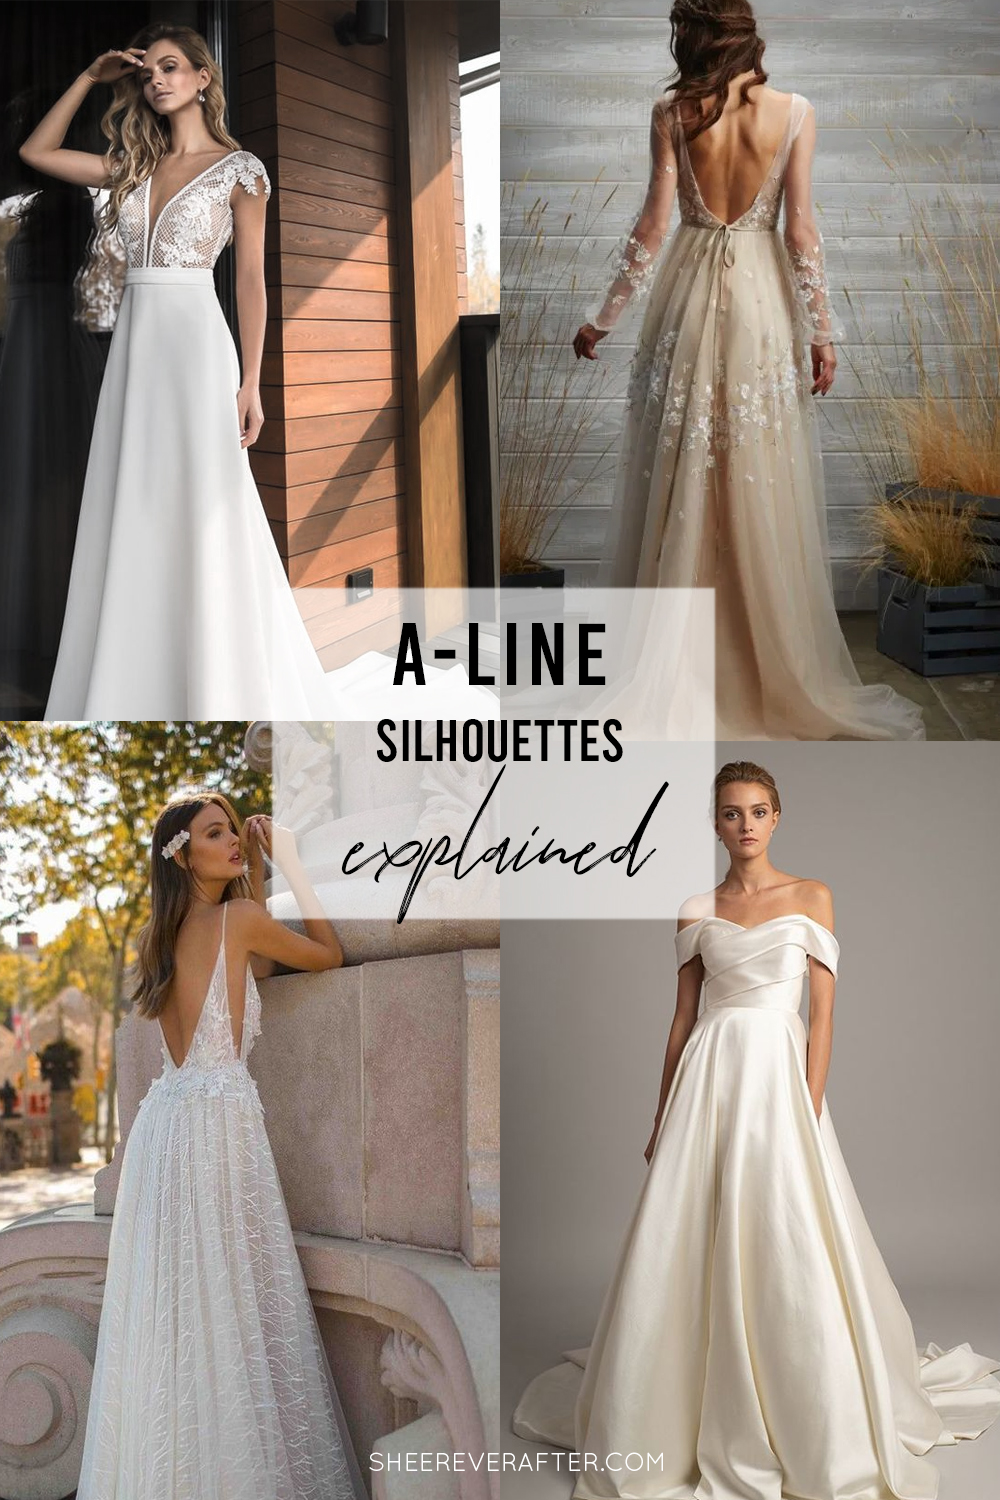 #weddingdress #weddingdresssilhouettes #bridalgown #bridal #weddingday #weddingideas #beautifuldress